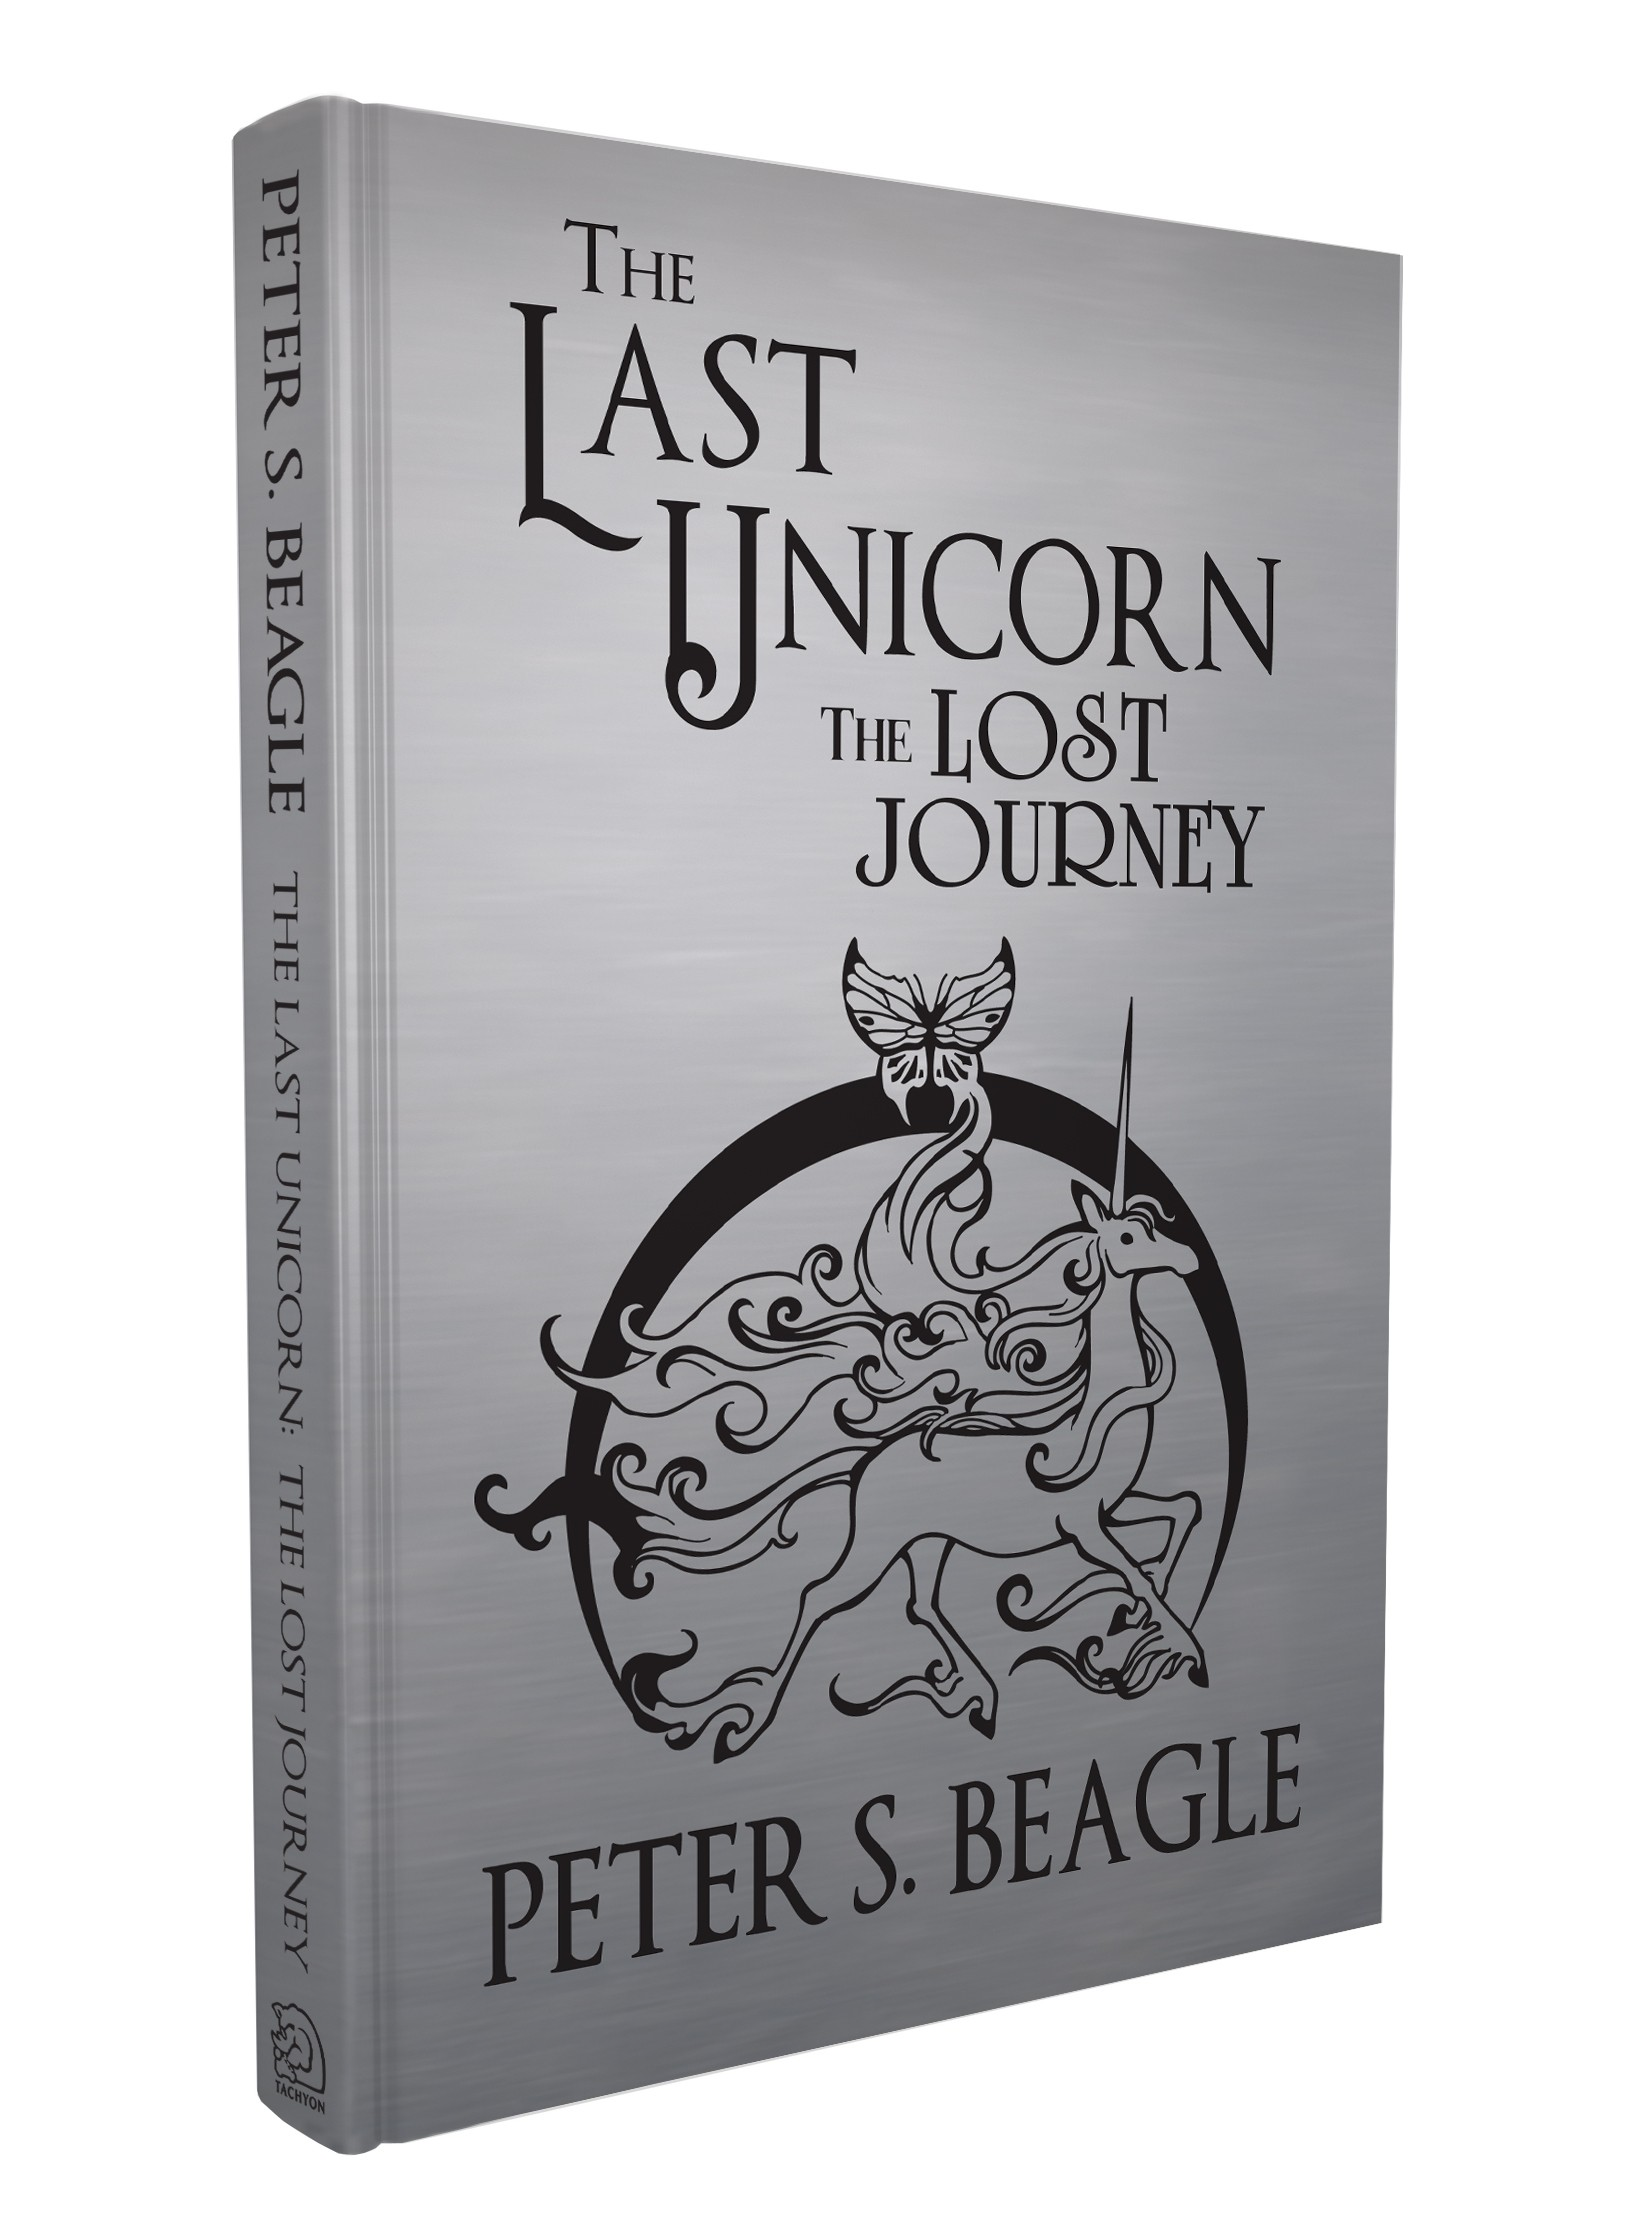 The Last Unicorn: The Lost Journey Signed Limited Edition